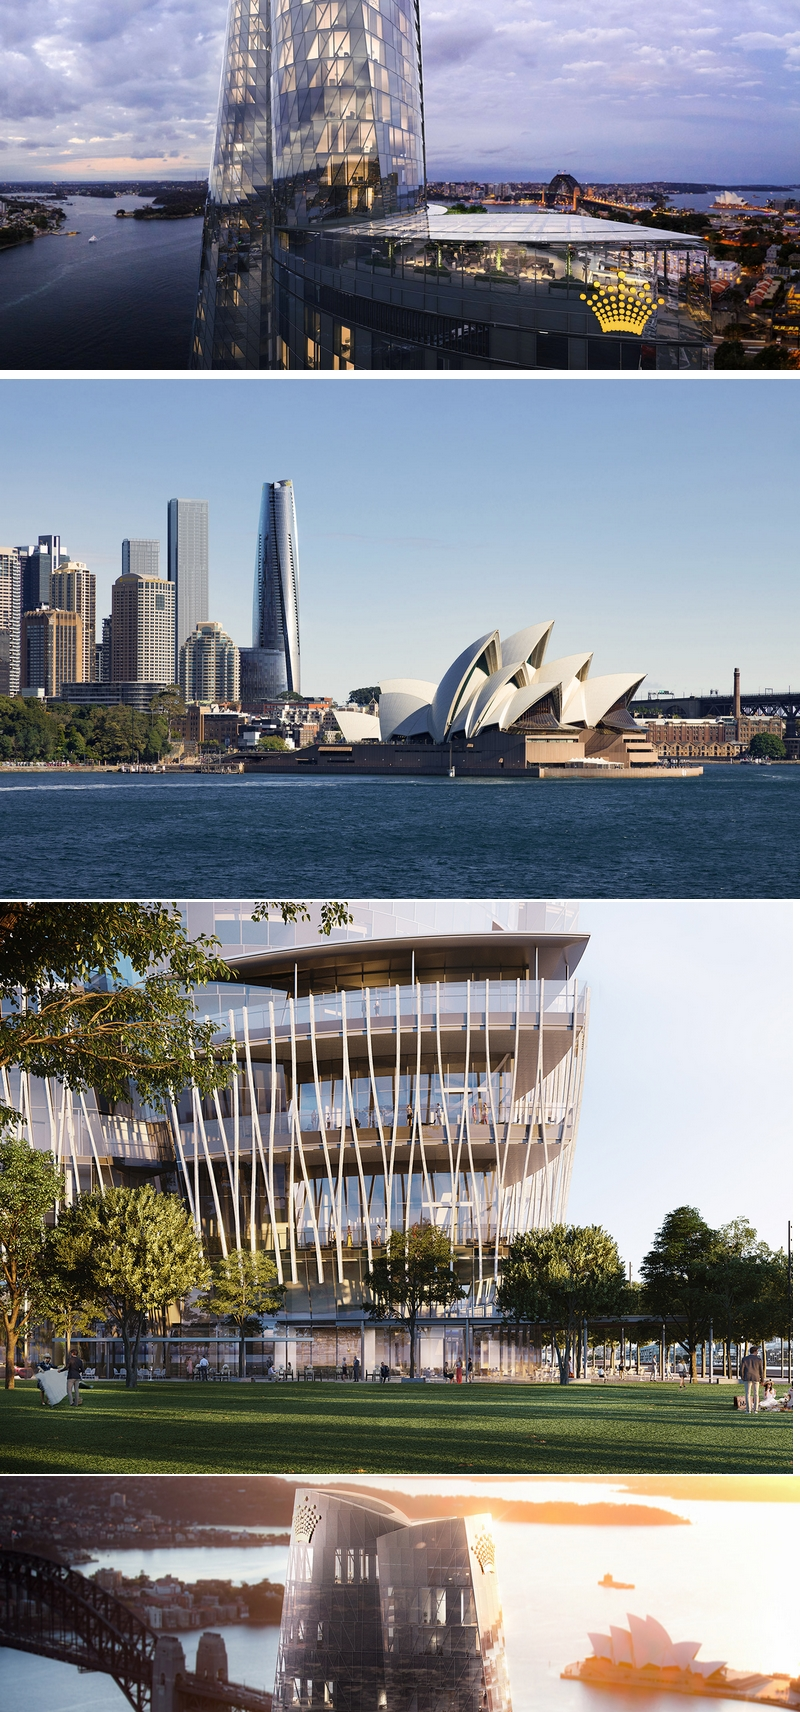 crownsydney - Crown Sydney to be a luxury, 6-star experience-2021 Opening